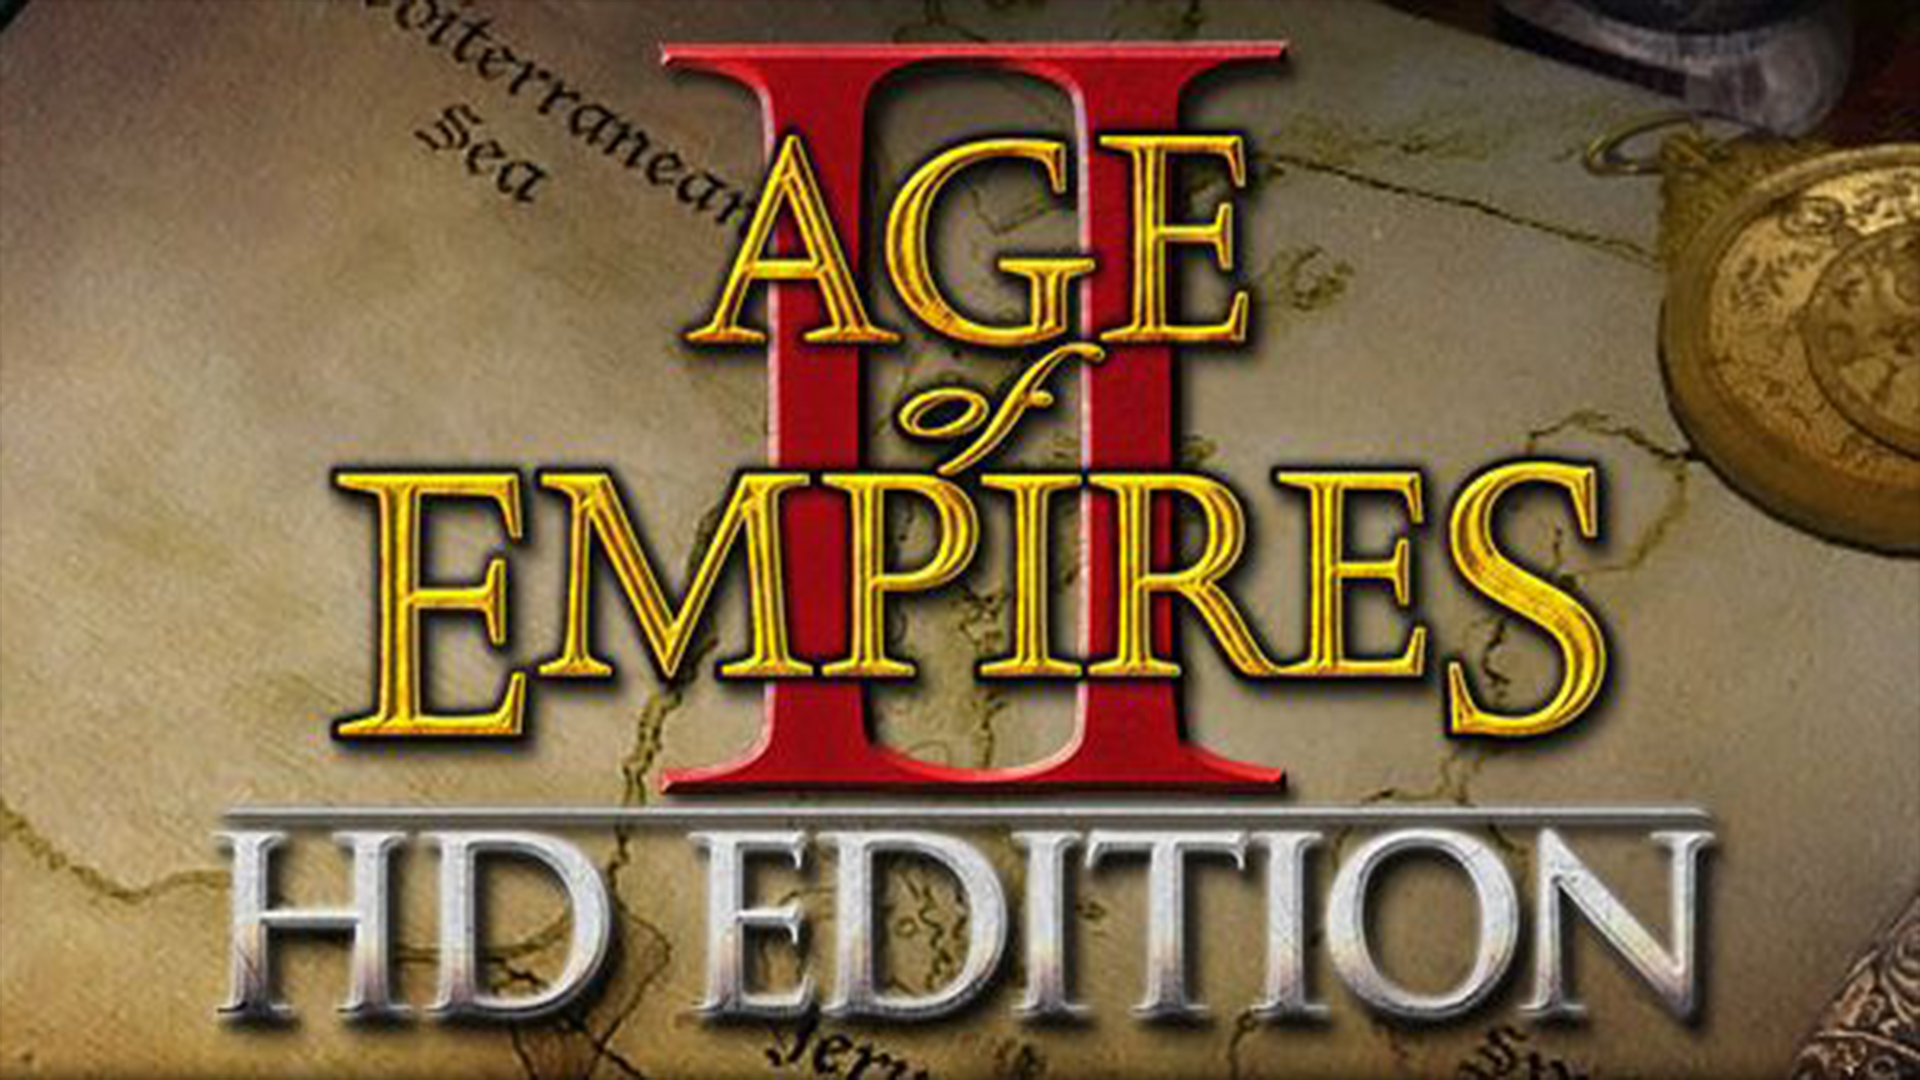 Age Of Empires Wallpaper: Age Of Empires II HD HD Wallpaper